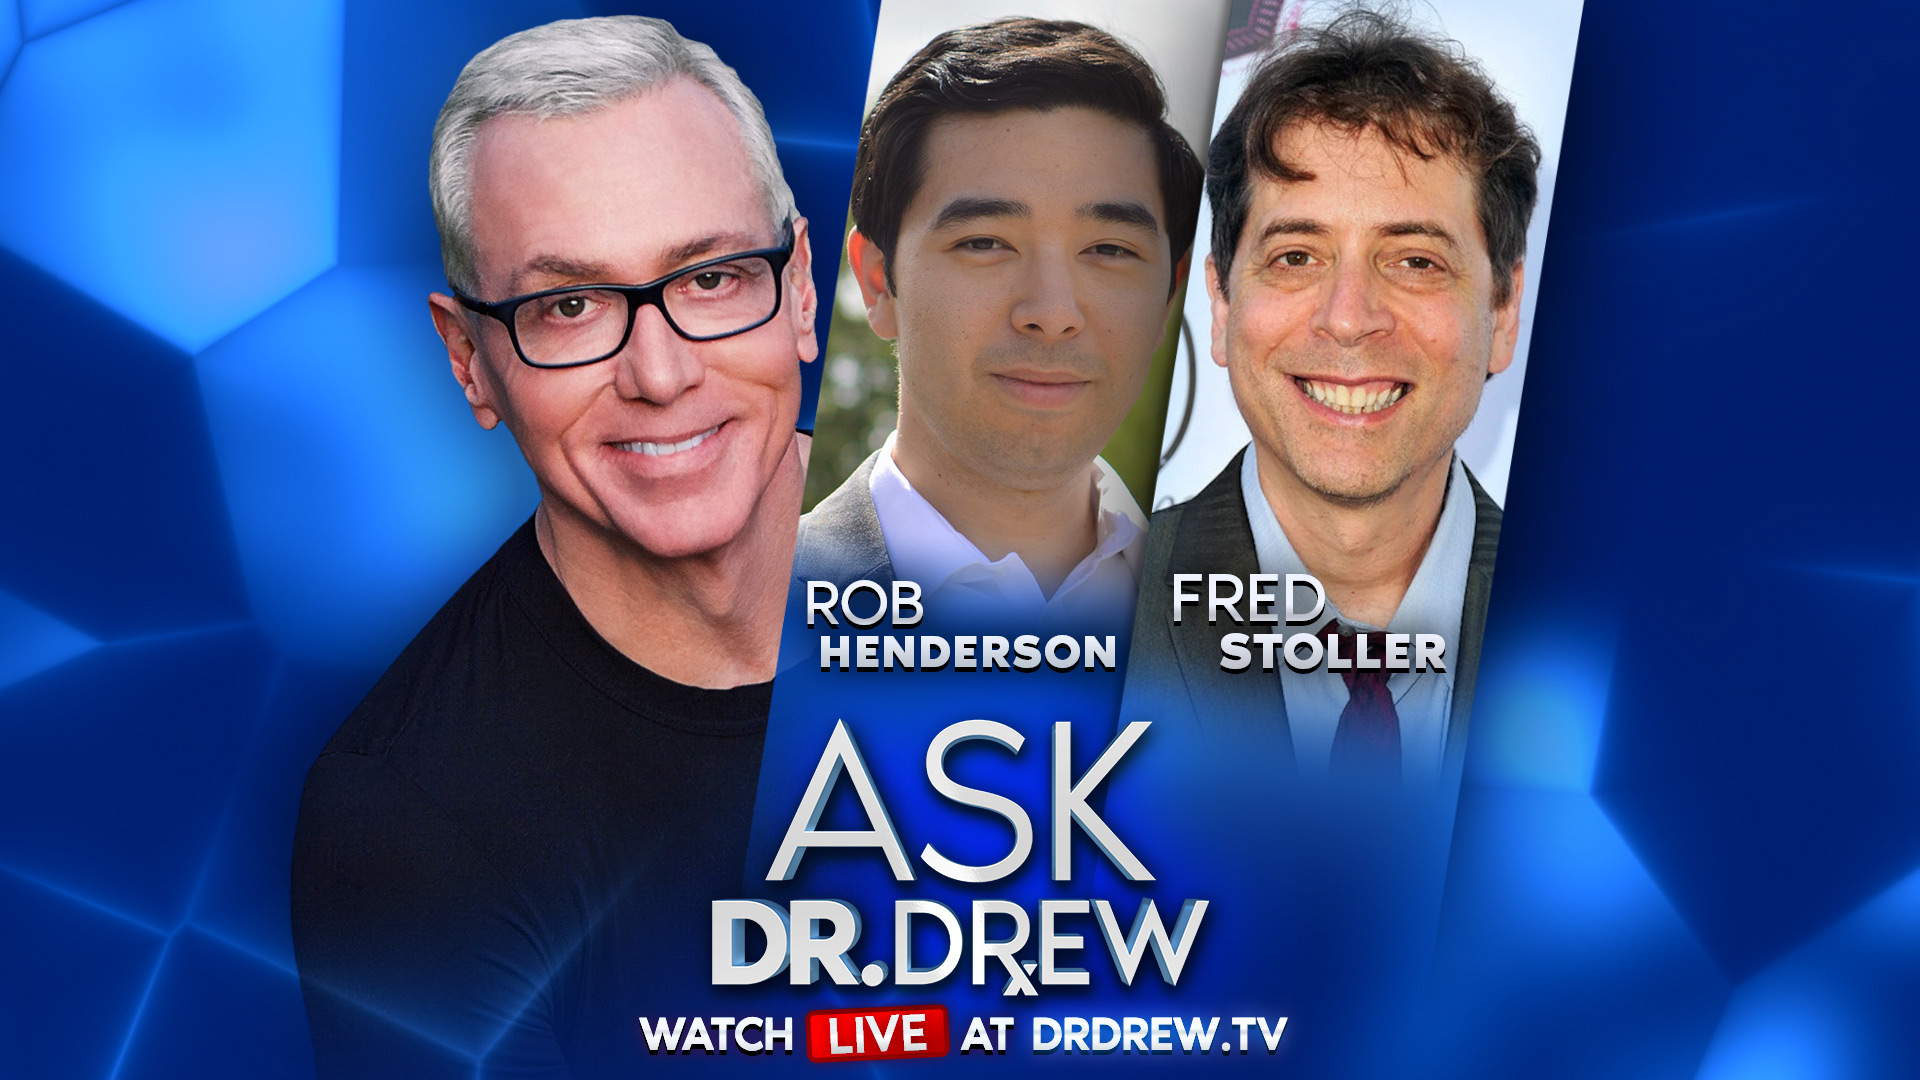 Wokefishing & Dark Triad Personality Types: Rob Henderson & Fred Stoller on Ask Dr. Drew